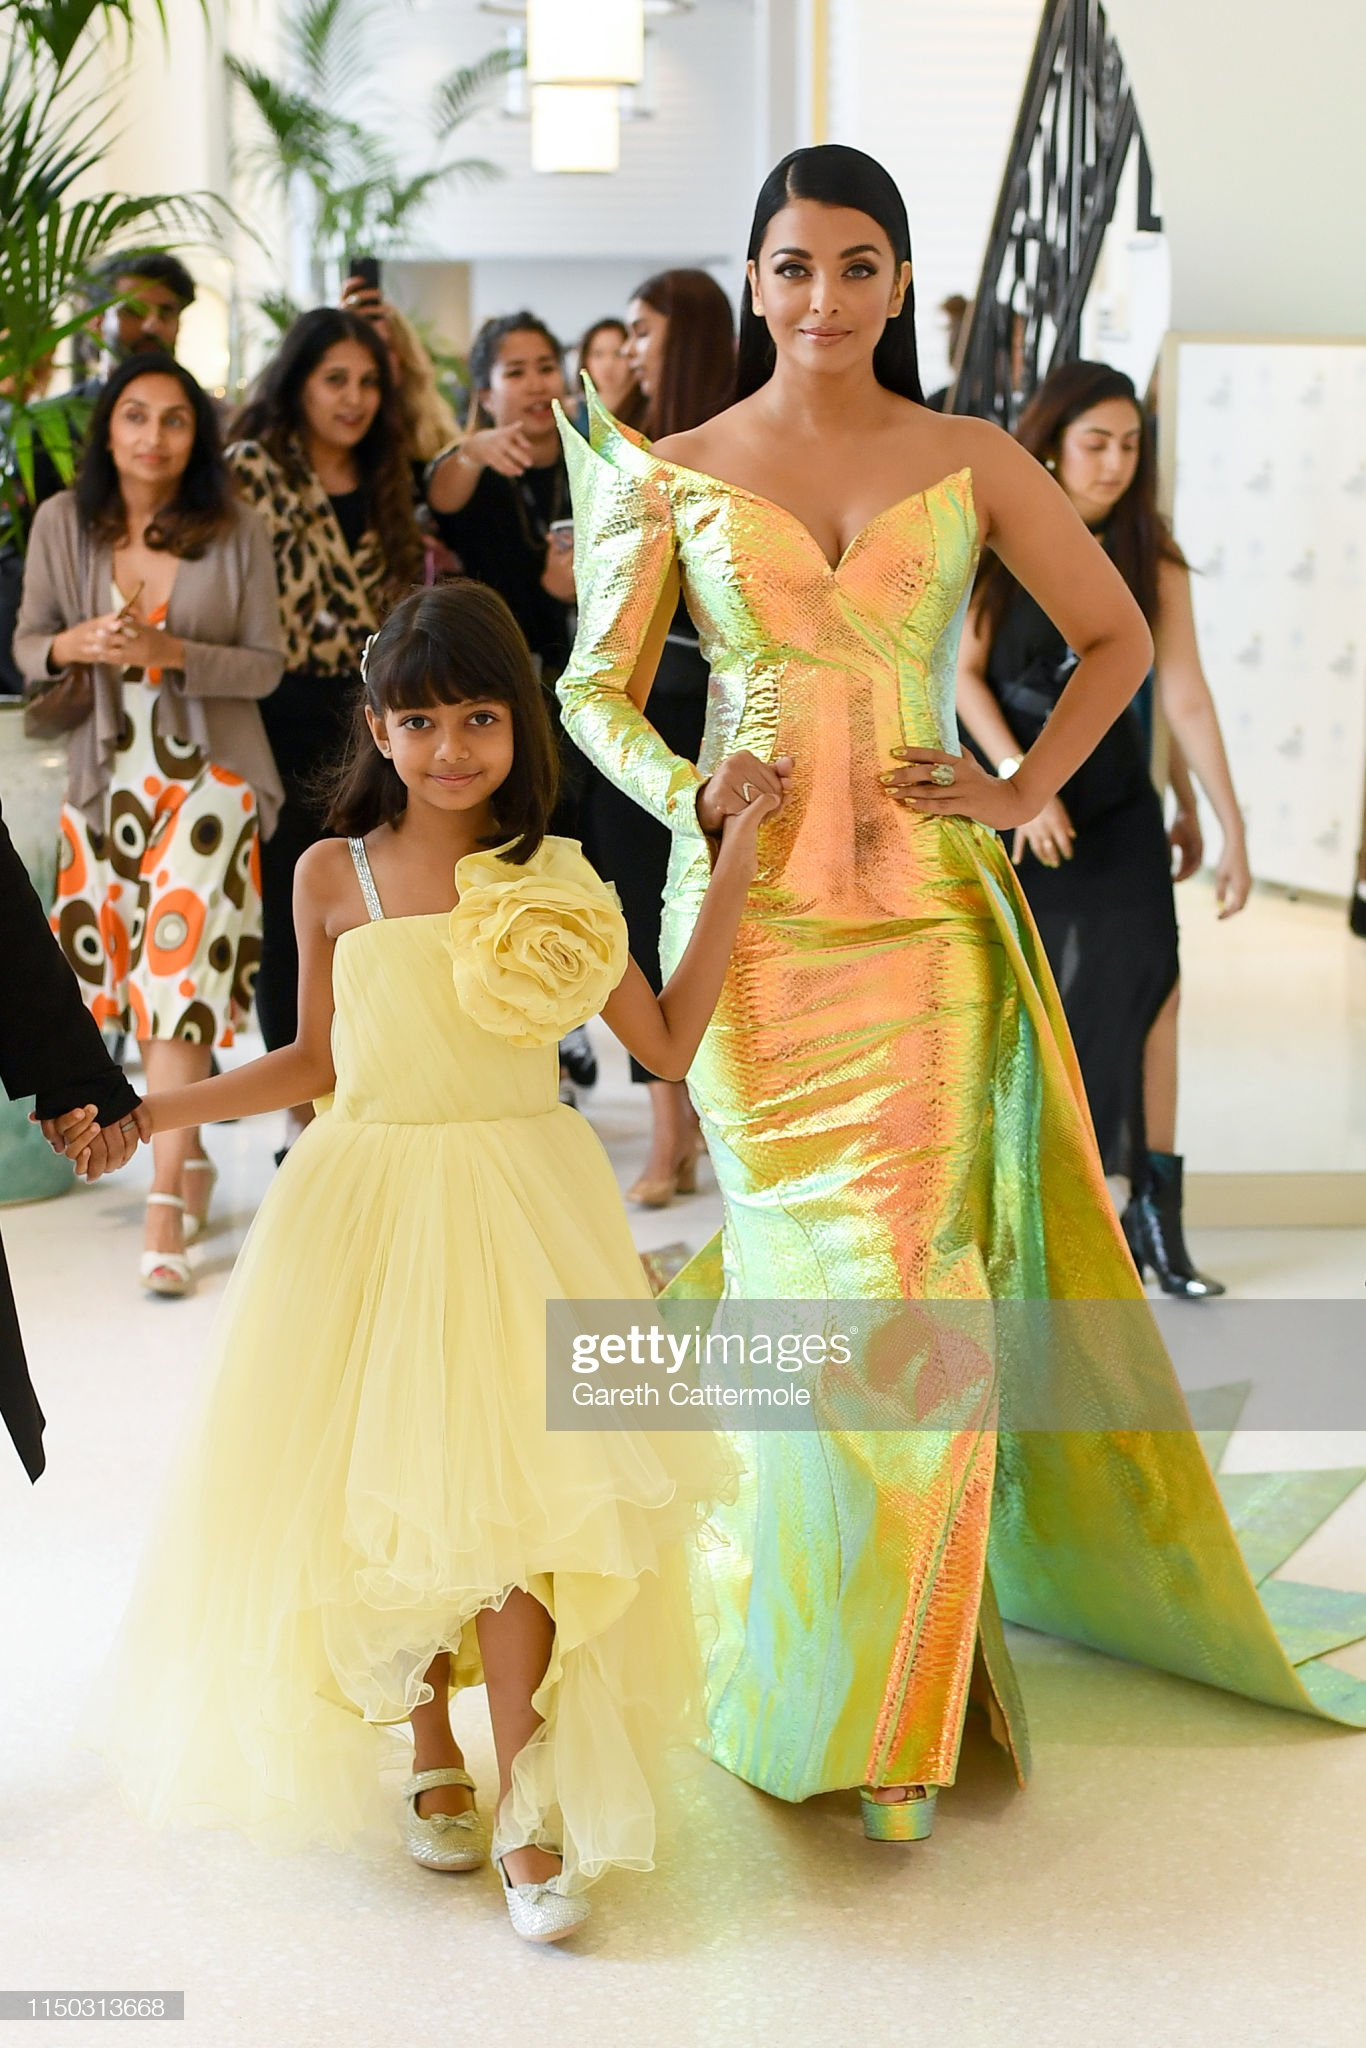 https://media.gettyimages.com/photos/aishwarya-rai-and-her-daughter-aaradhya-during-the-72nd-annual-cannes-picture-id1150313668?s=2048x2048